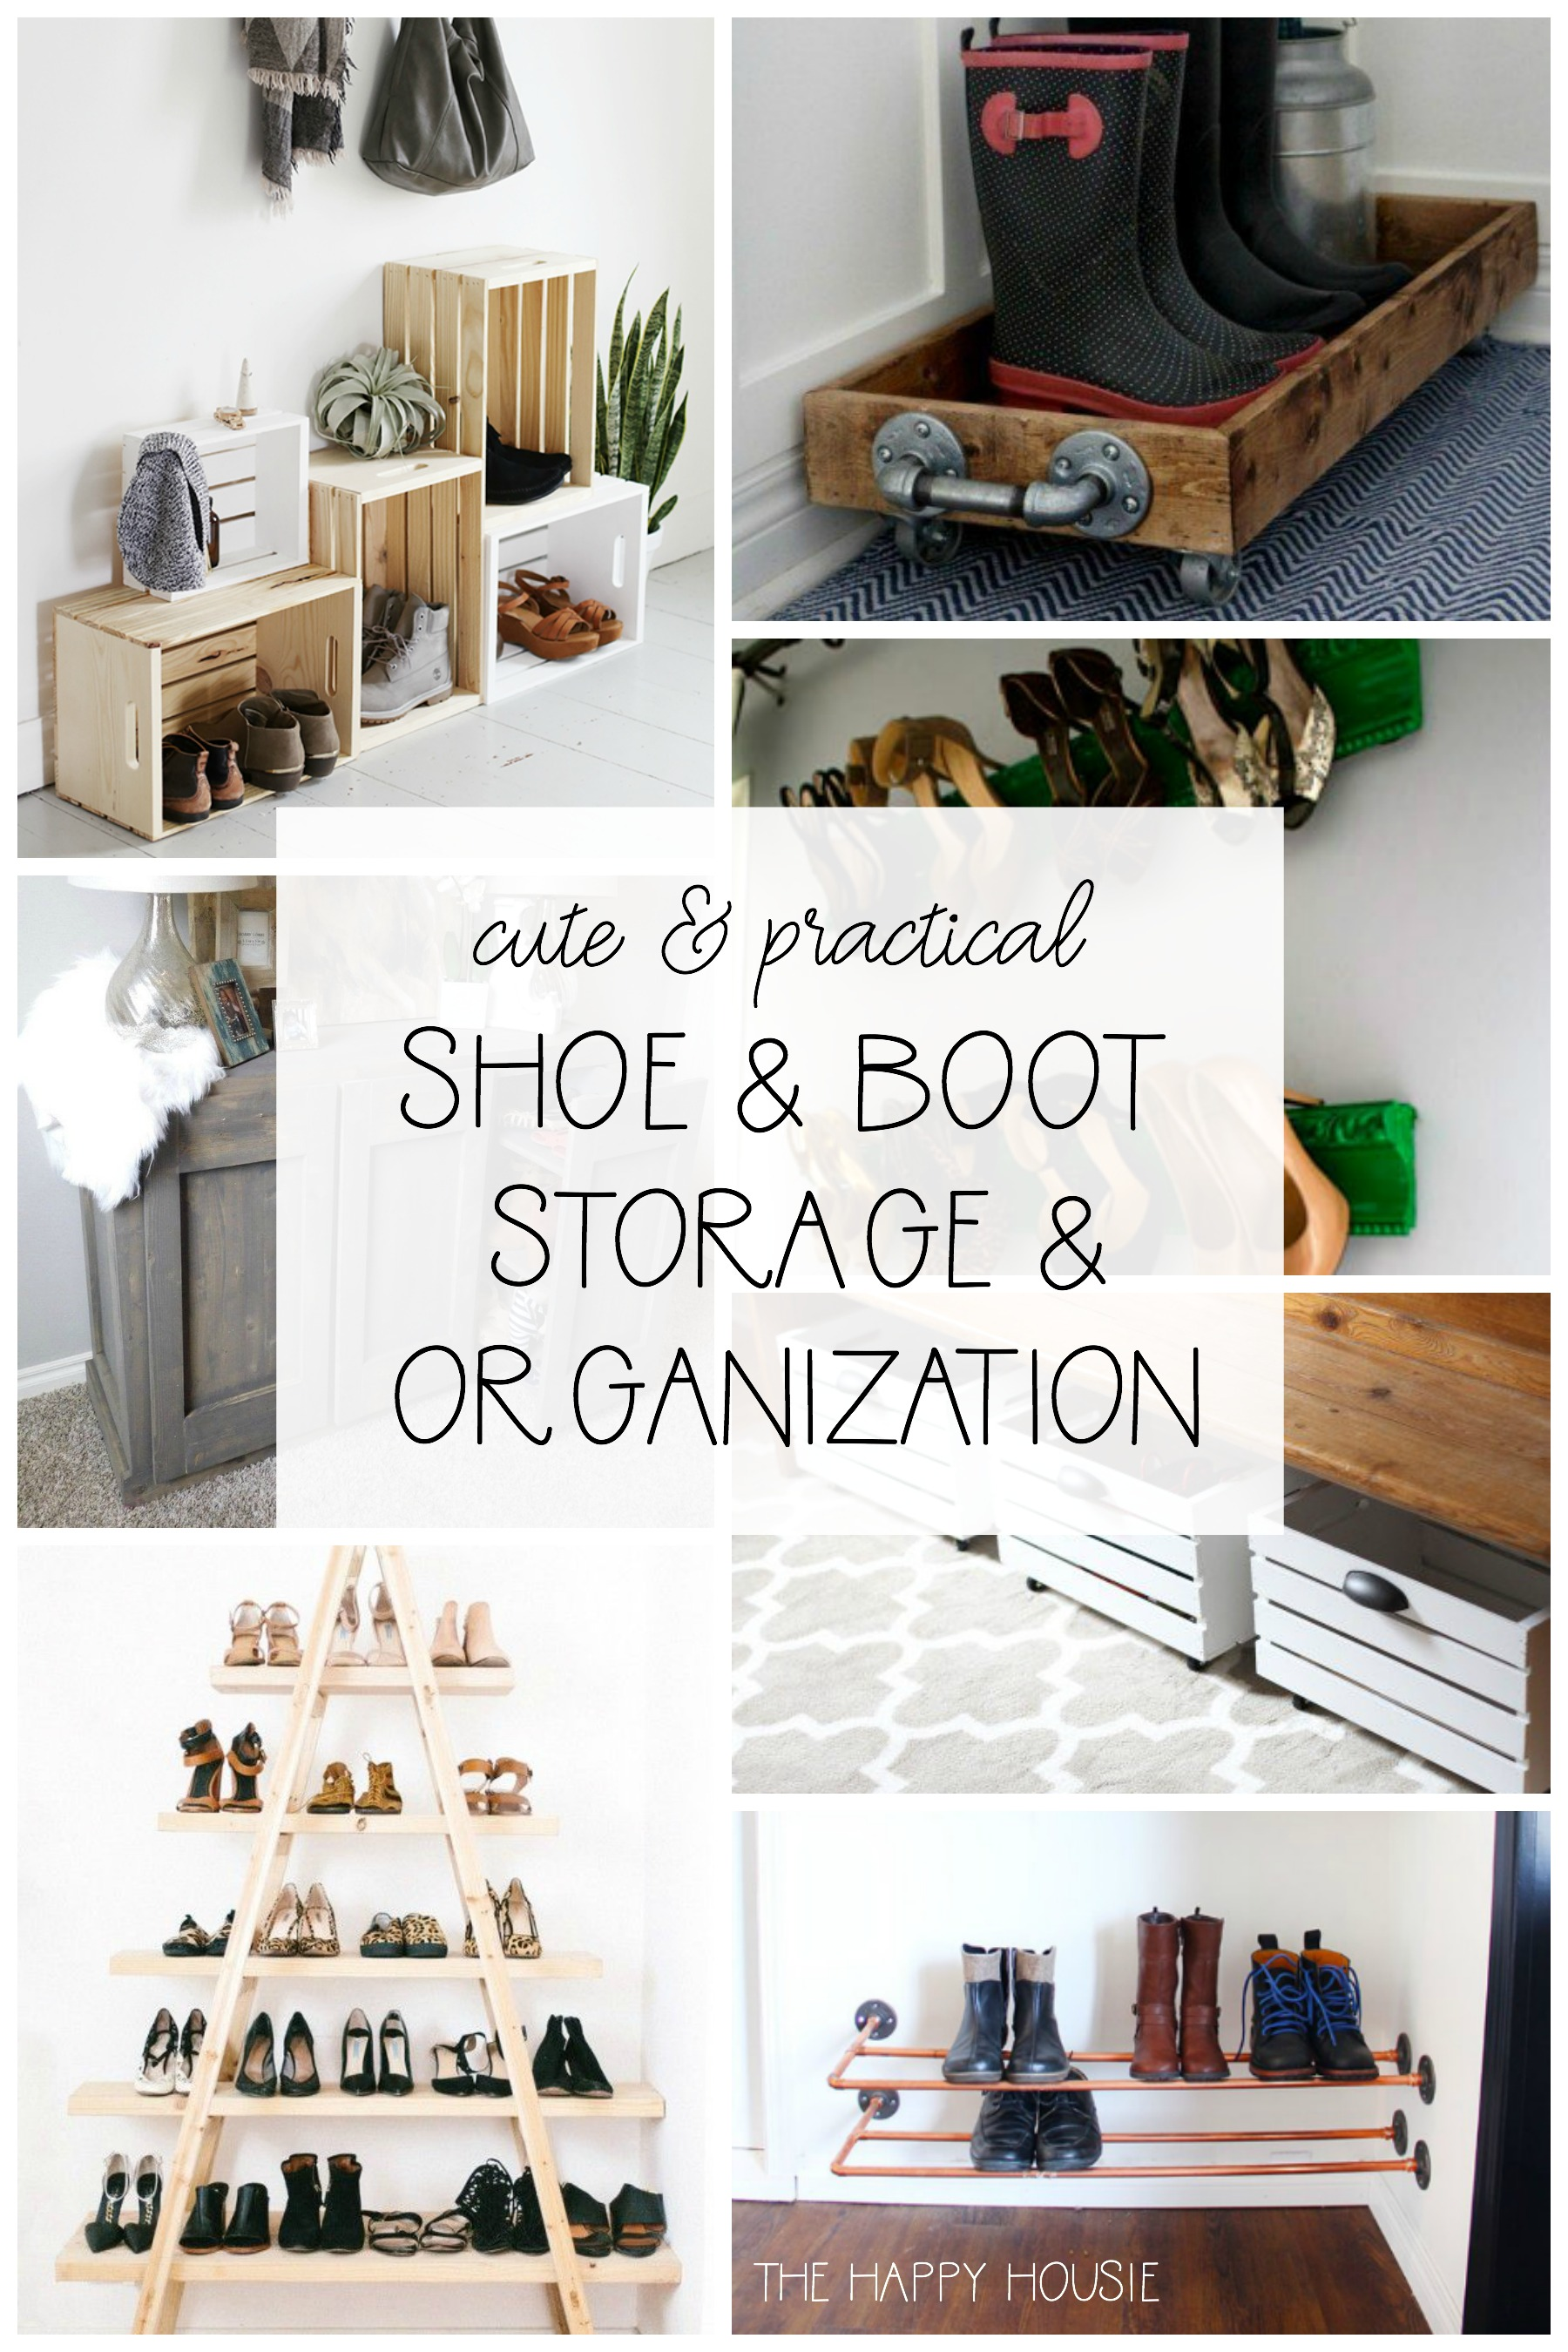 Cute Practical Diy Shoe Storage And Organization The Happy Housie